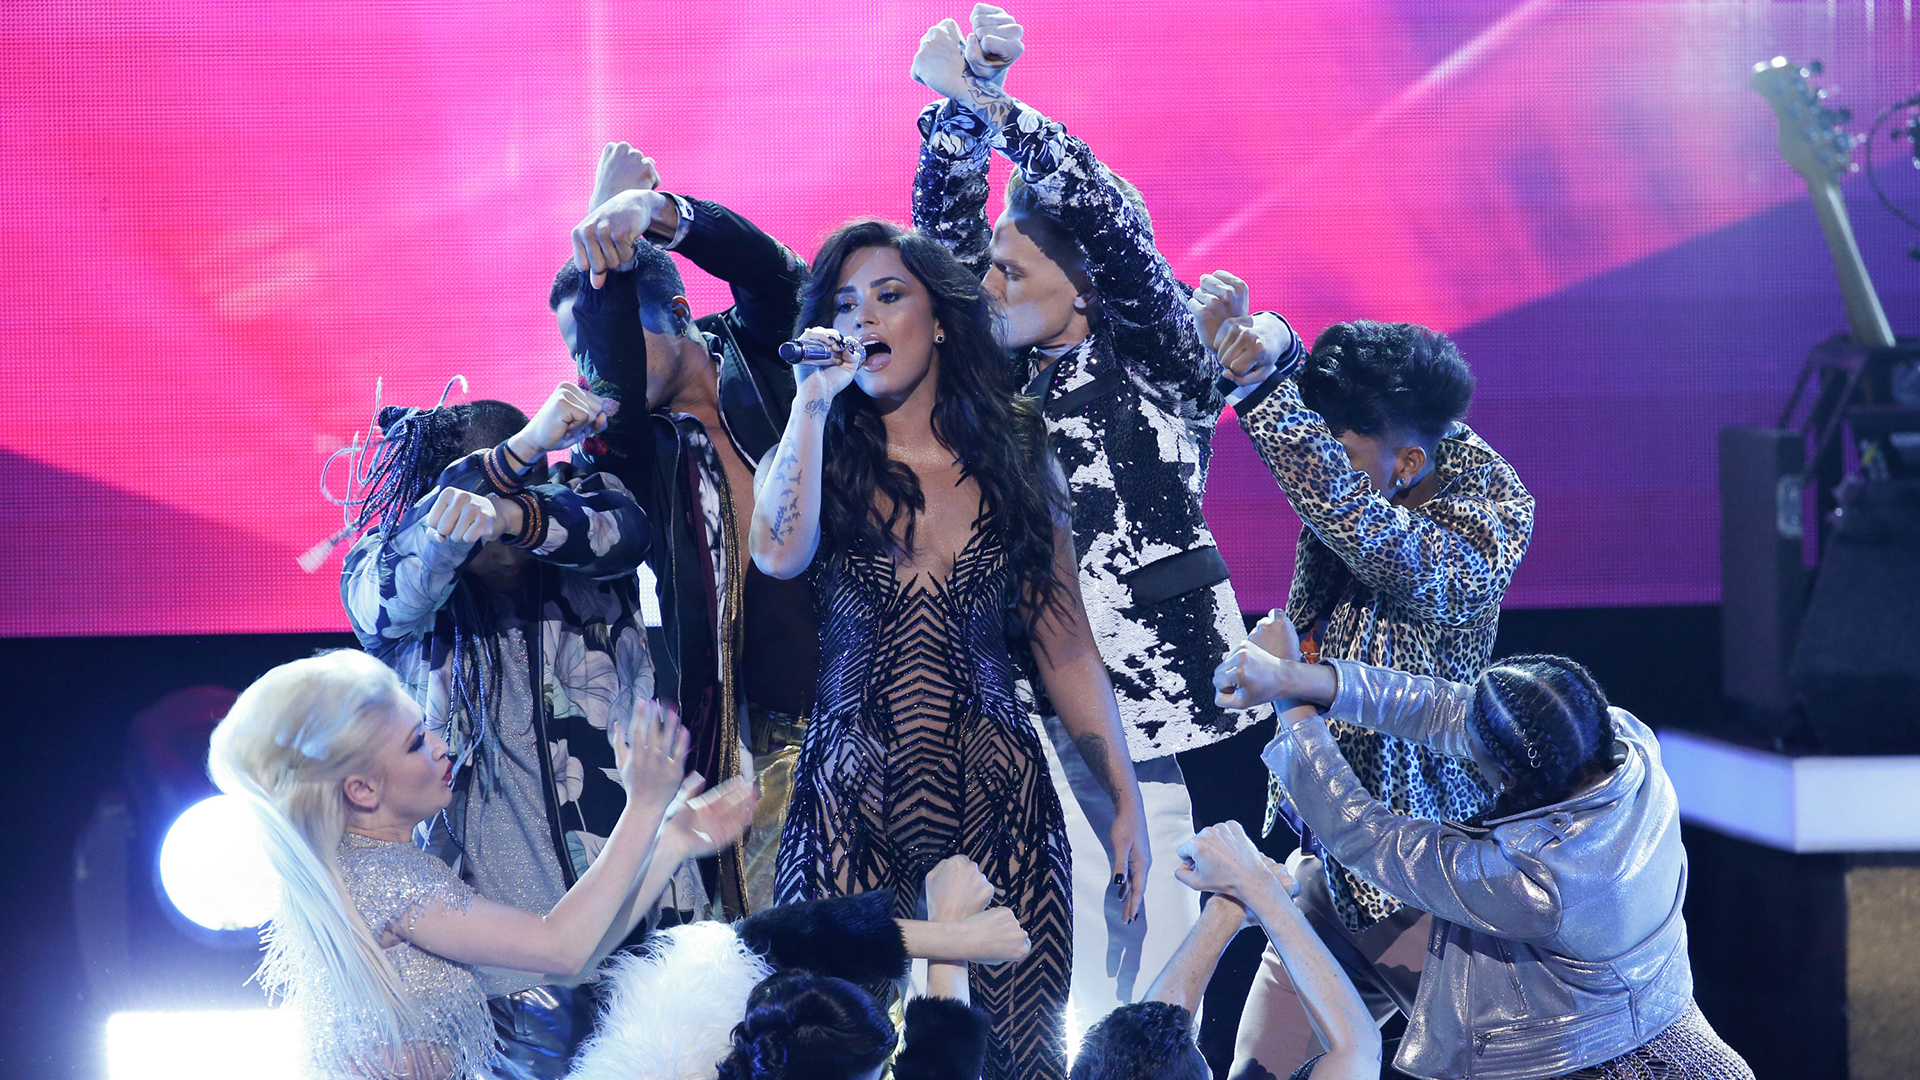 Demi Lovato performs as part of the opening medley at Bee Gees Tribute